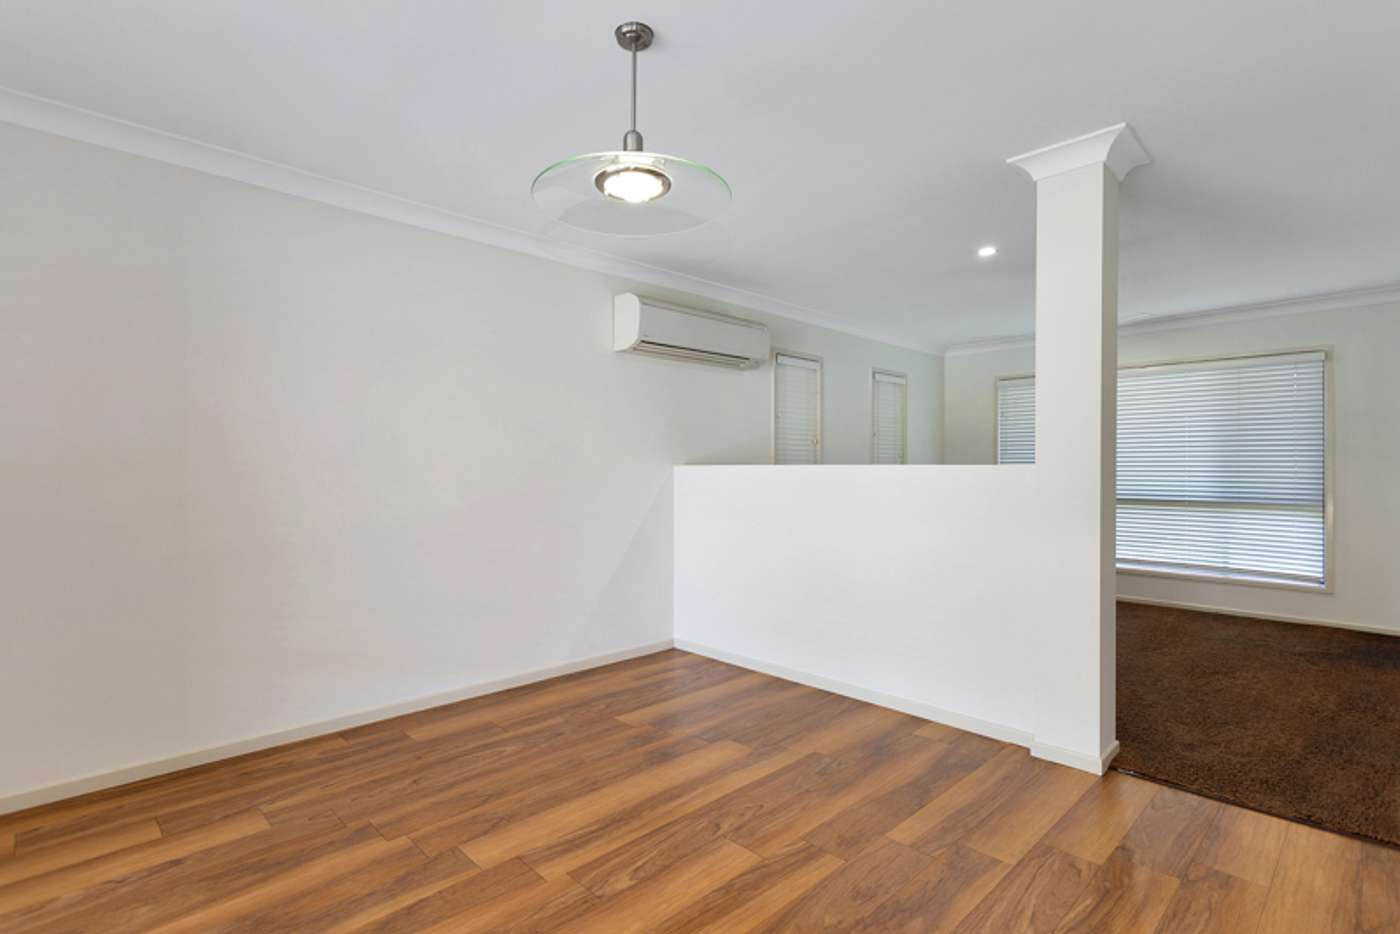 Sixth view of Homely house listing, 7 Mark Crescent, Glenella QLD 4740